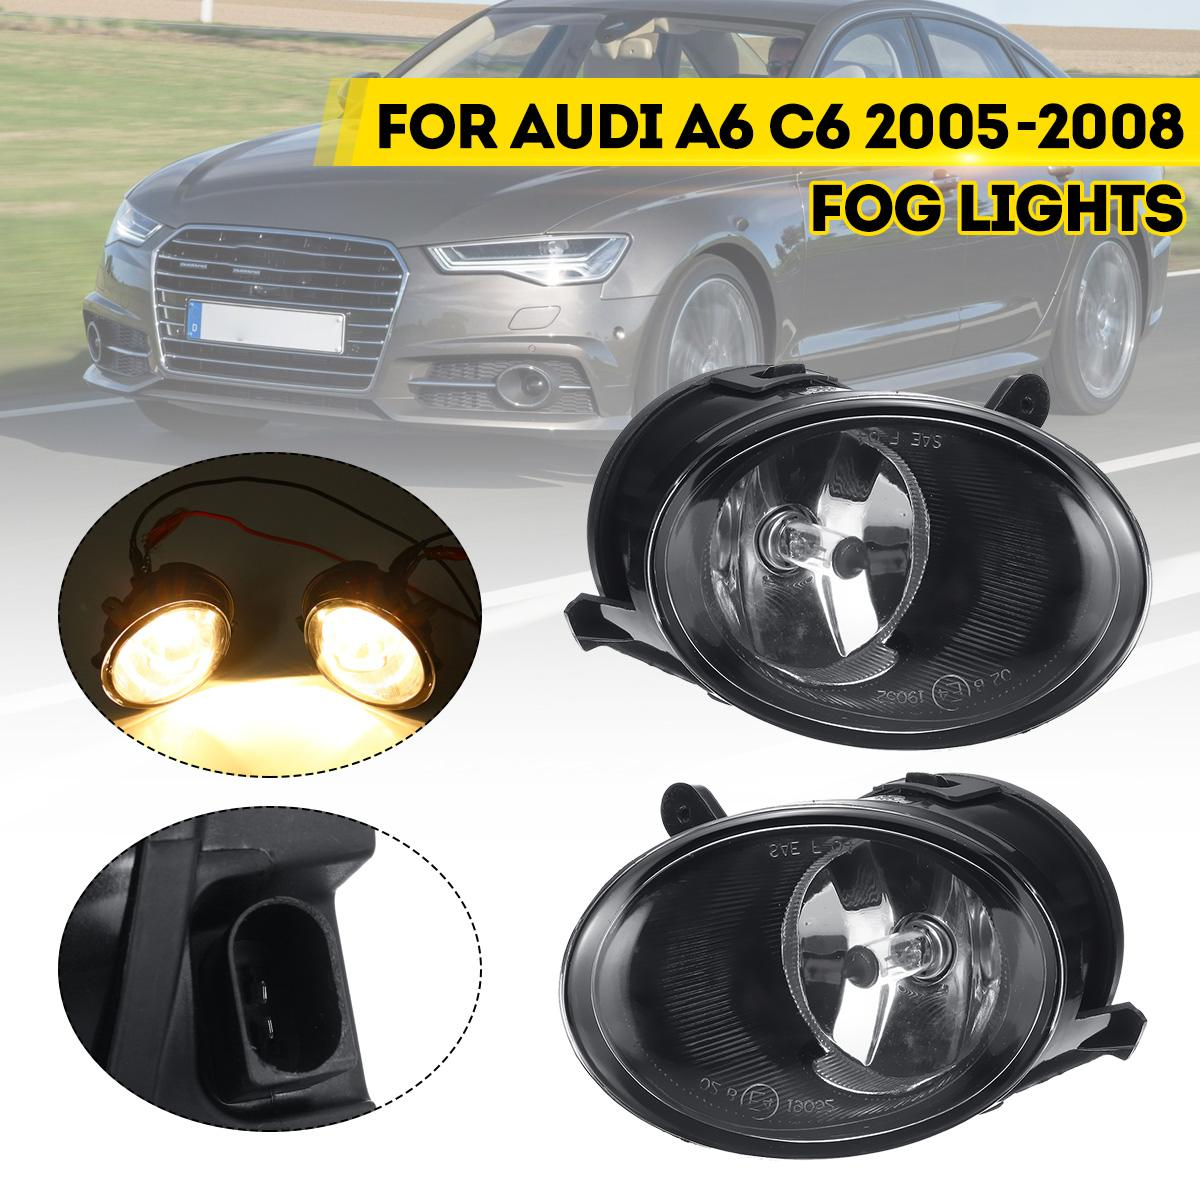 Car Front Bumper Fog Light For Audi A6 C6 2005 2006 2007 2008 Bulb Styling Replacement Driving Headlights Lamp 12V image